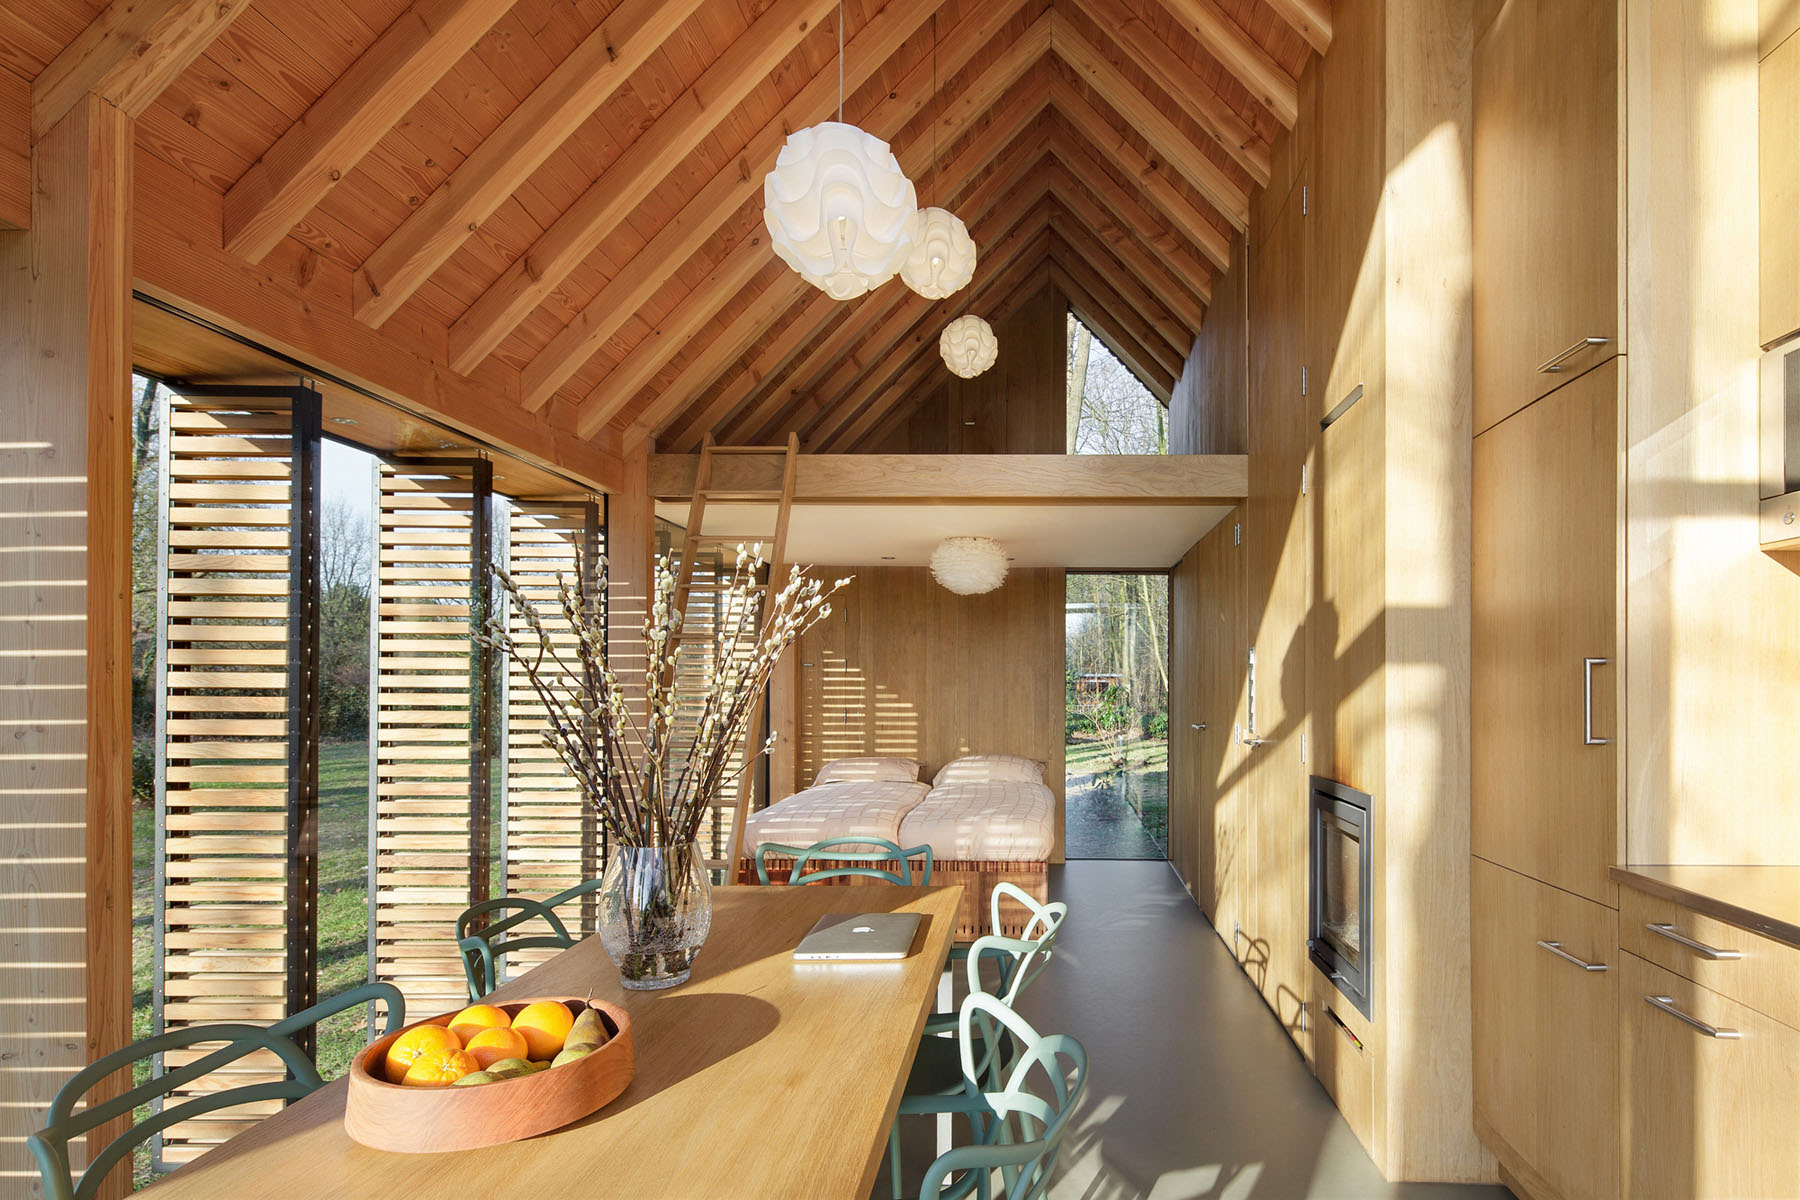 Interior of Tiny Wood Country House